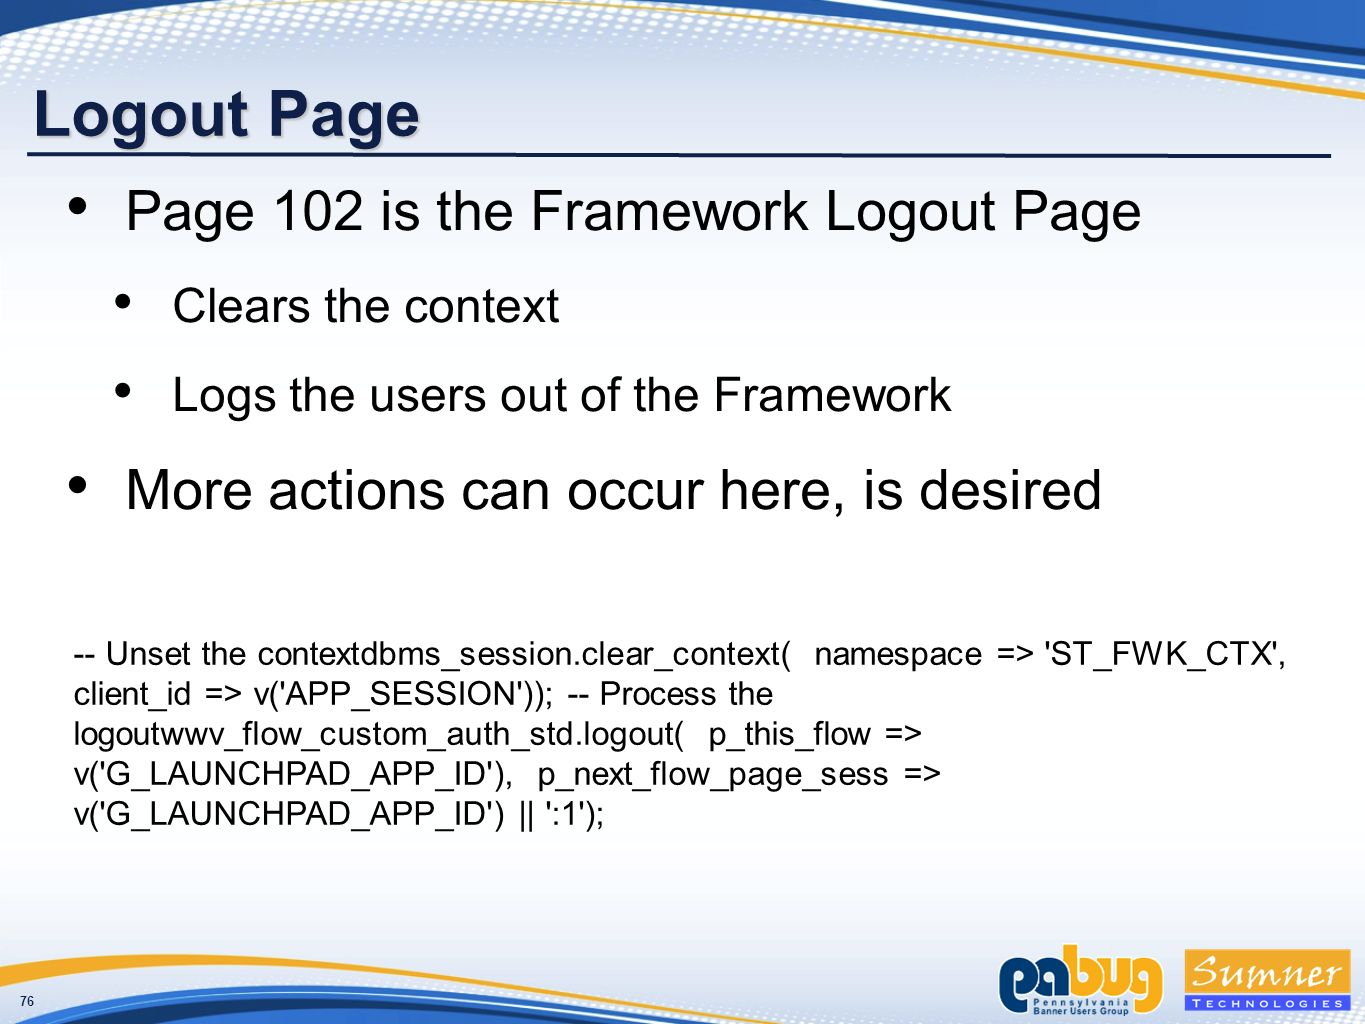 76 Logout Page Page 102 is the Framework Logout Page Clears the context Logs the users out of the Framework More actions can occur here, is desired -- Unset the contextdbms_session.clear_context( namespace => ST_FWK_CTX , client_id => v( APP_SESSION )); -- Process the logoutwwv_flow_custom_auth_std.logout( p_this_flow => v( G_LAUNCHPAD_APP_ID ), p_next_flow_page_sess => v( G_LAUNCHPAD_APP_ID ) || :1 );